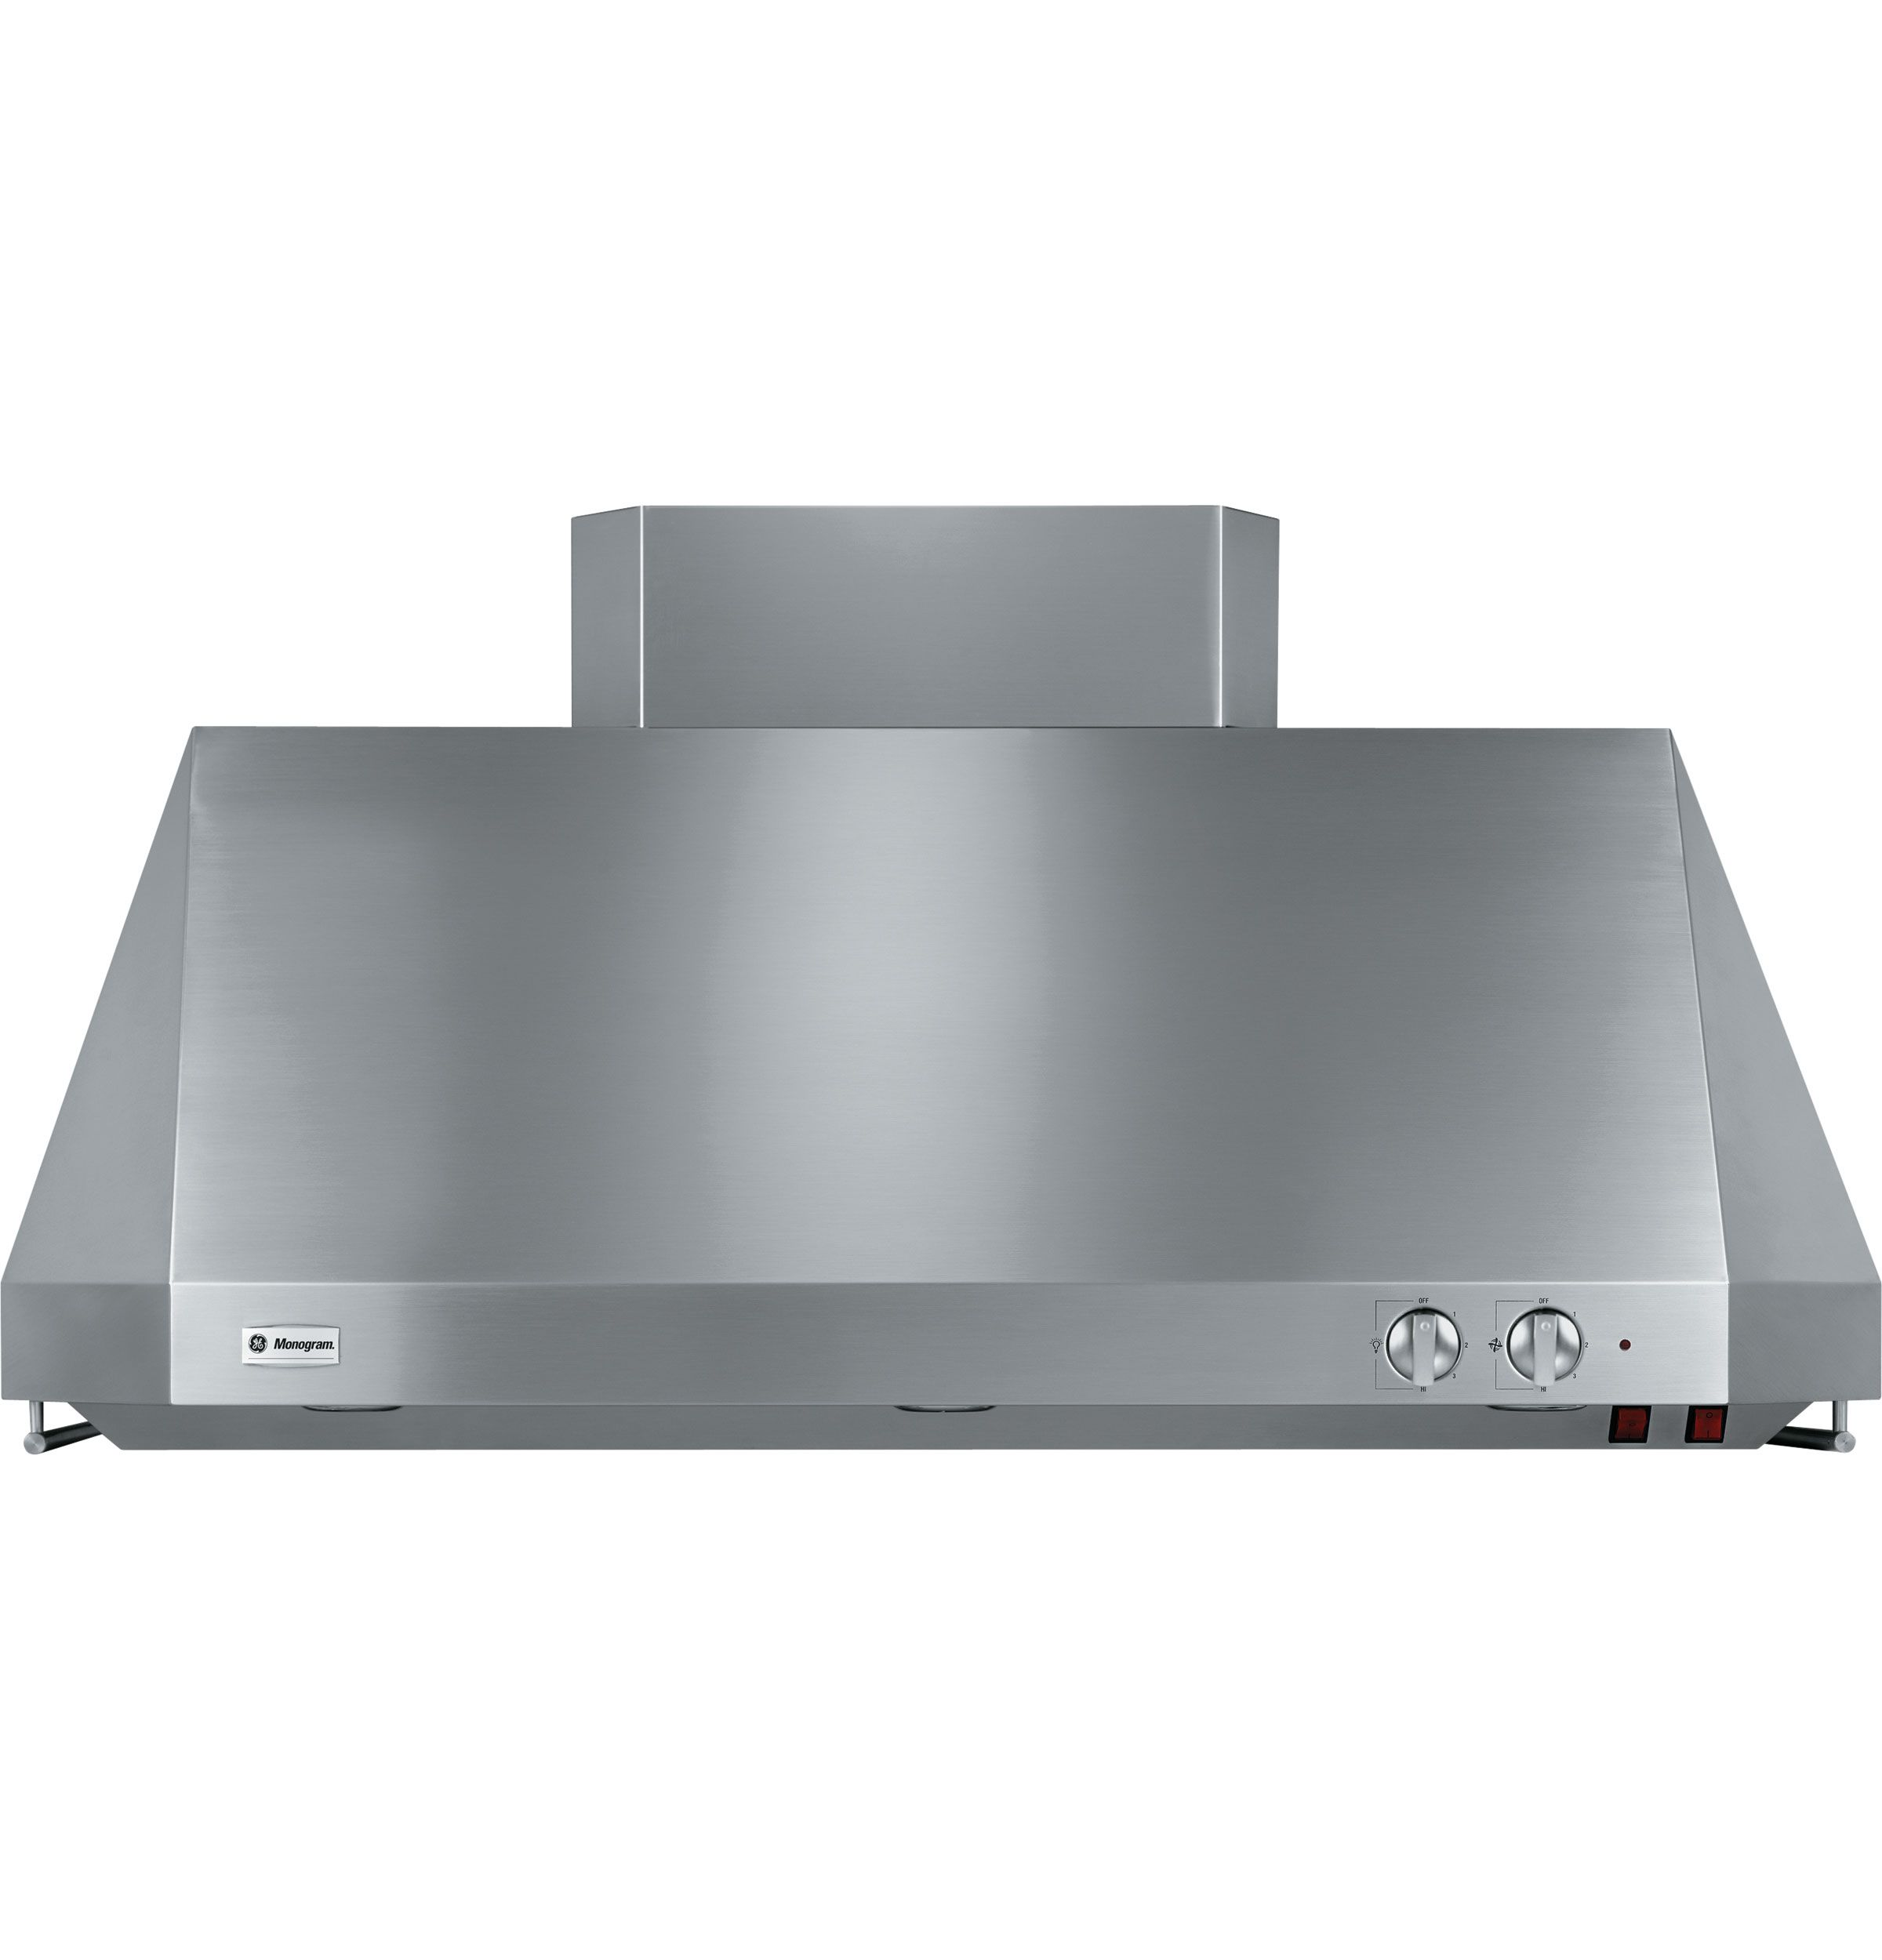 Zv48tsfss 48 Stainless Steel Professional Hood The Ge Monogram Collection Monogram Appliances Wall Mount Range Hood Stainless